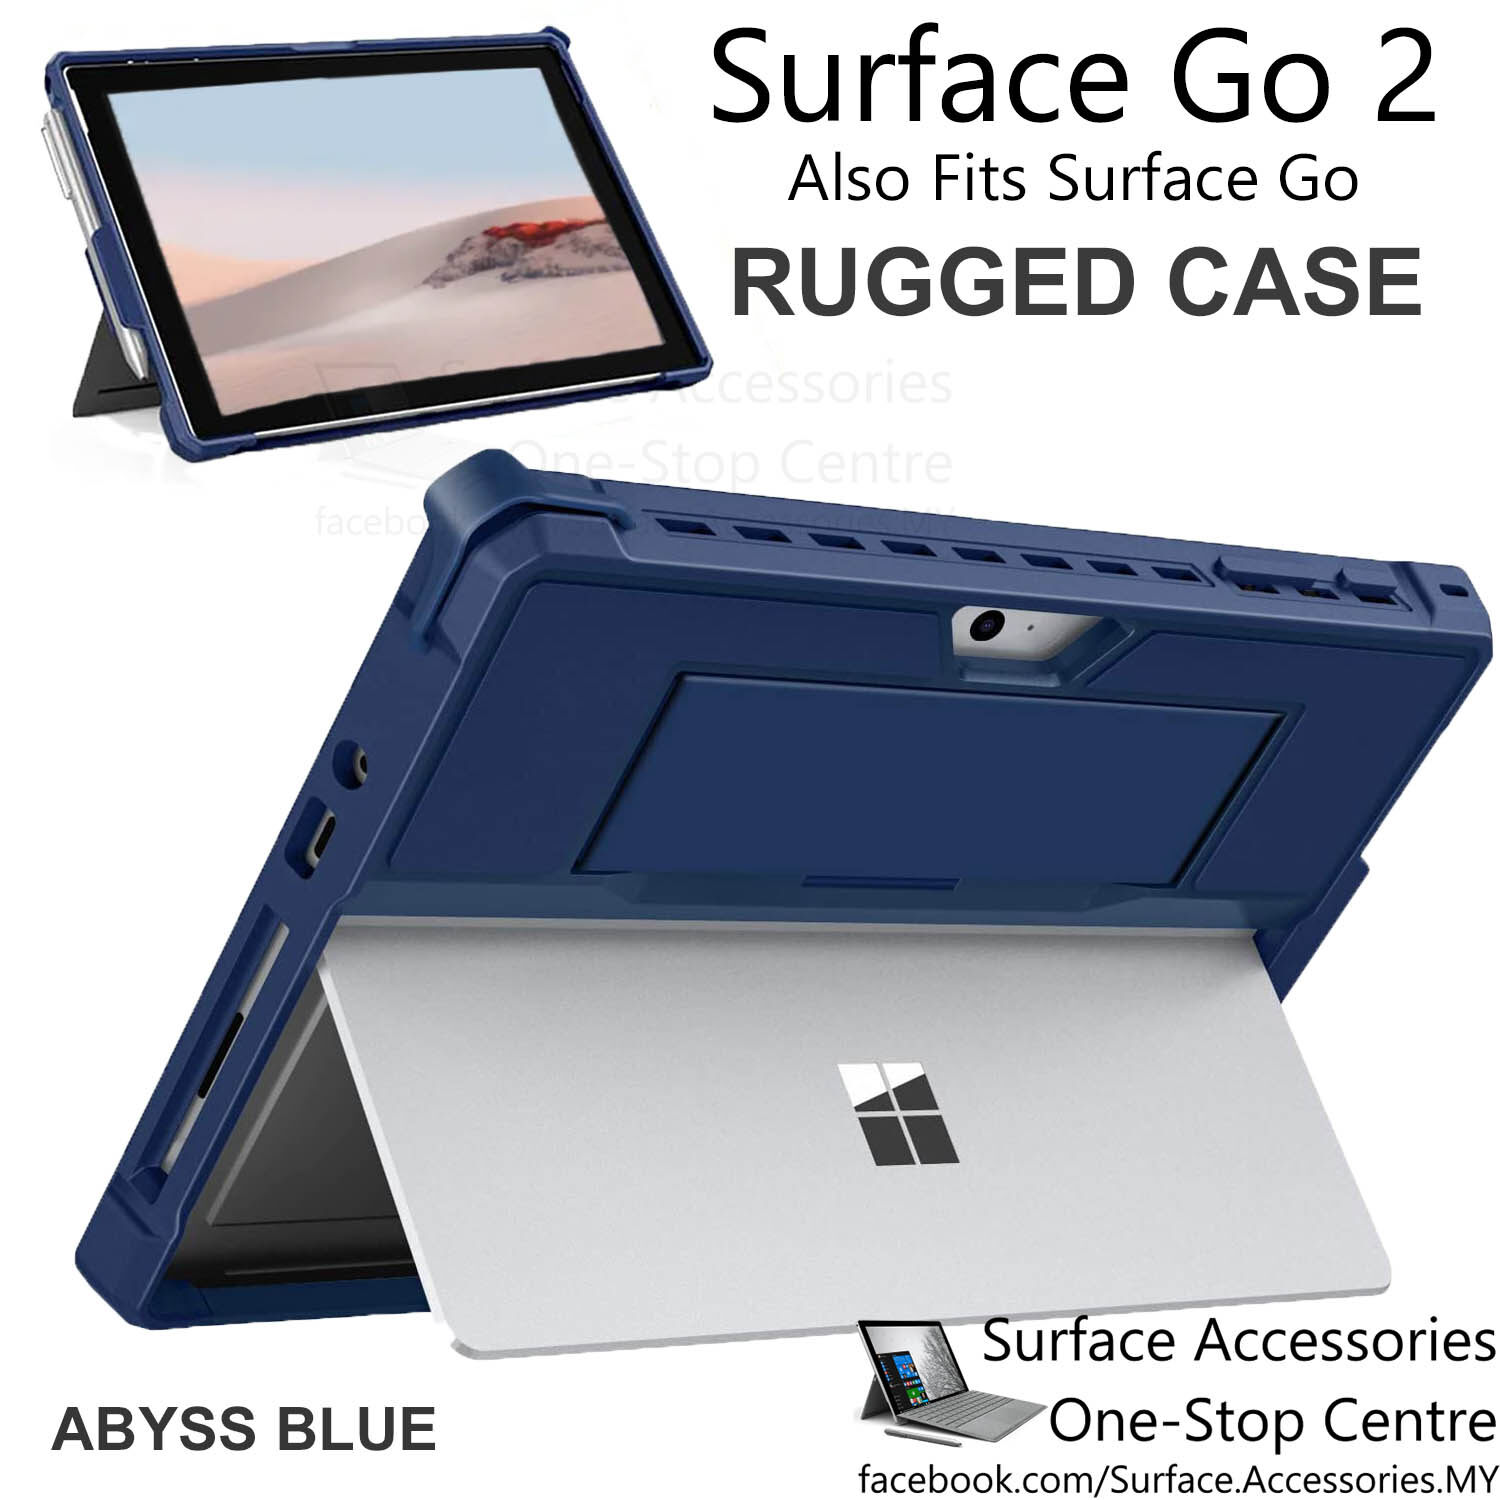 [MALAYSIA]Microsoft Surface Go 2 Rugged Casing with Pen Holder Surface Go 2 Cover Rugged Case Stand Flip Case with Pen Holder Case Surface Go 2 Protective Case Surface Go Rugged Case Surface Go Protective Case Surface Go Rugged Case with Pen Holder